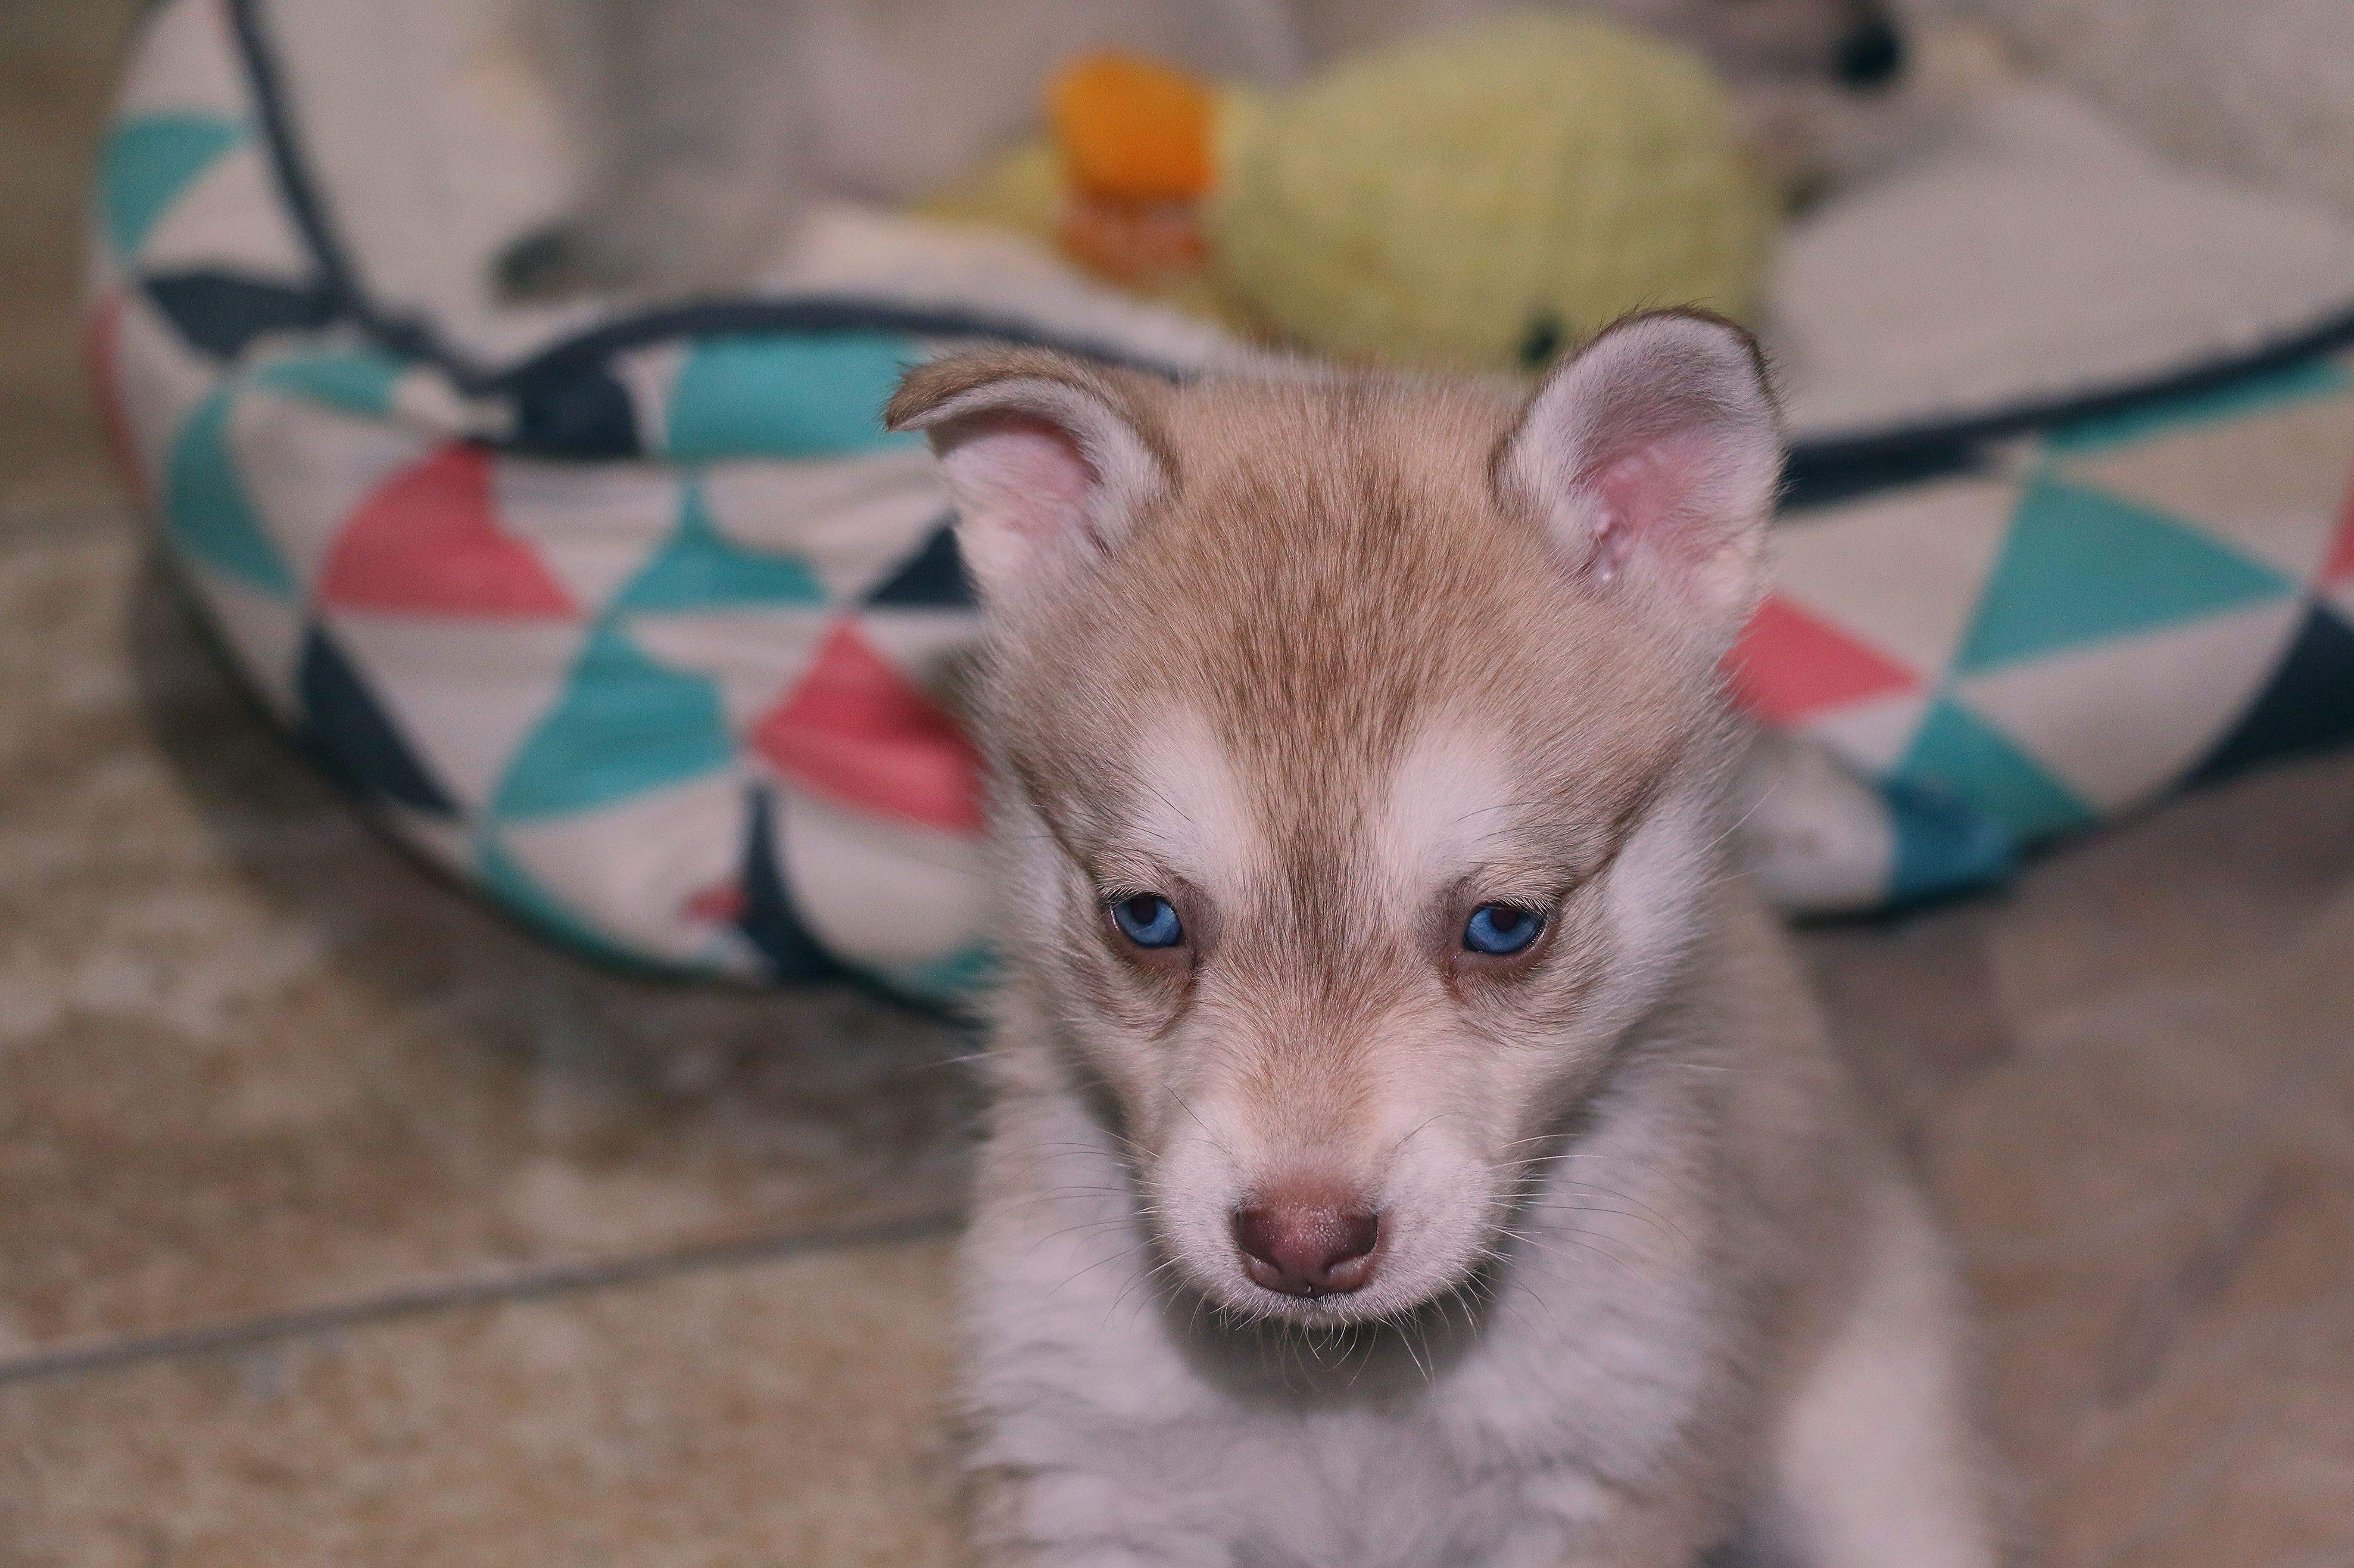 Red and white Alaskan Klee Kai  #miniaturehusky Miniature husky colors #miniaturehusky Red and white Alaskan Klee Kai  #miniaturehusky Miniature husky colors #miniaturehusky Red and white Alaskan Klee Kai  #miniaturehusky Miniature husky colors #miniaturehusky Red and white Alaskan Klee Kai  #miniaturehusky Miniature husky colors #miniaturehusky